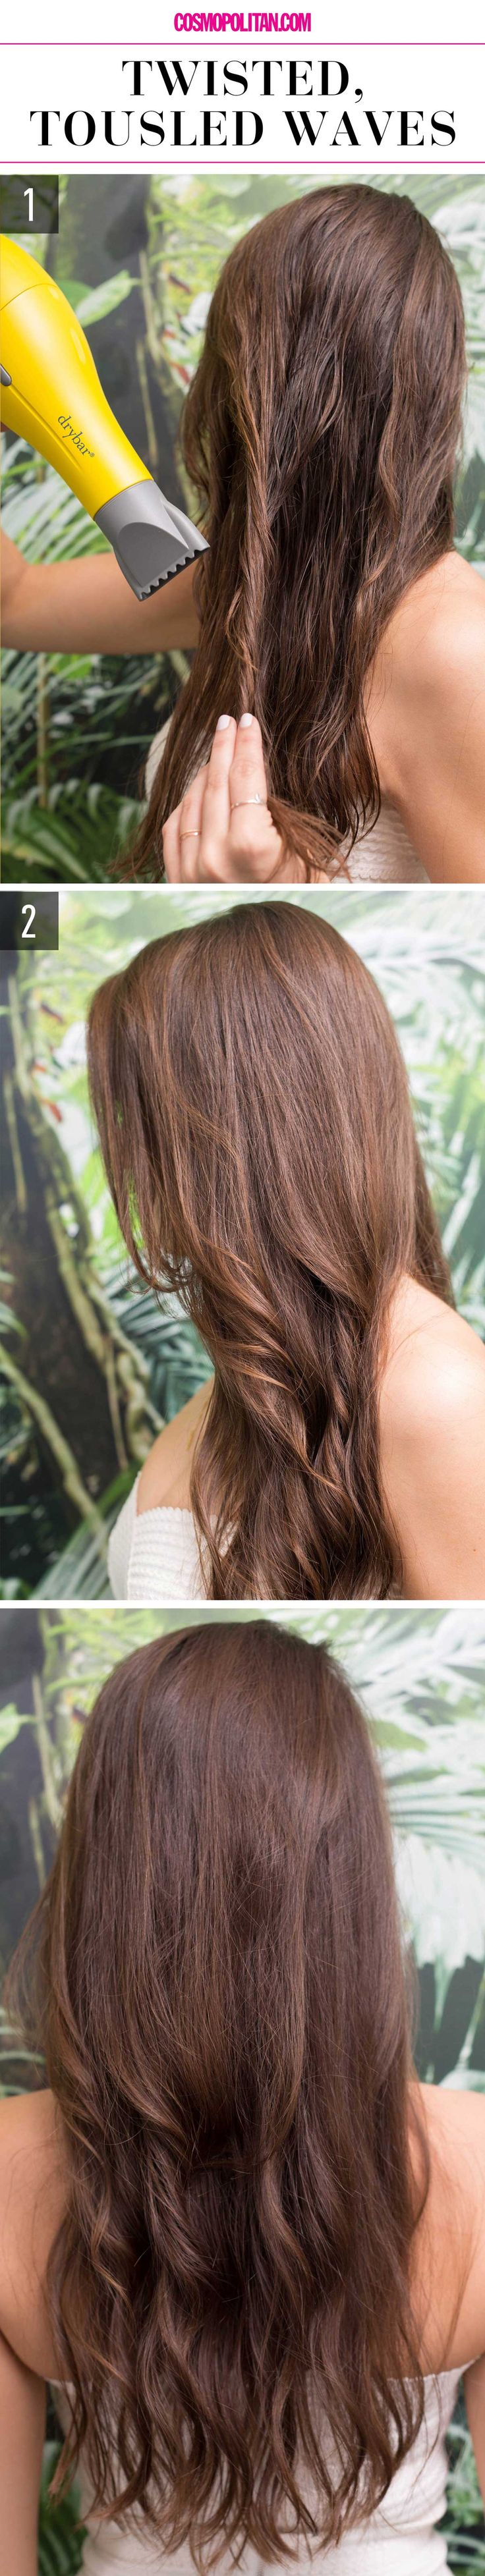 Cool supereasy hairstyles for lazy girls who canut even